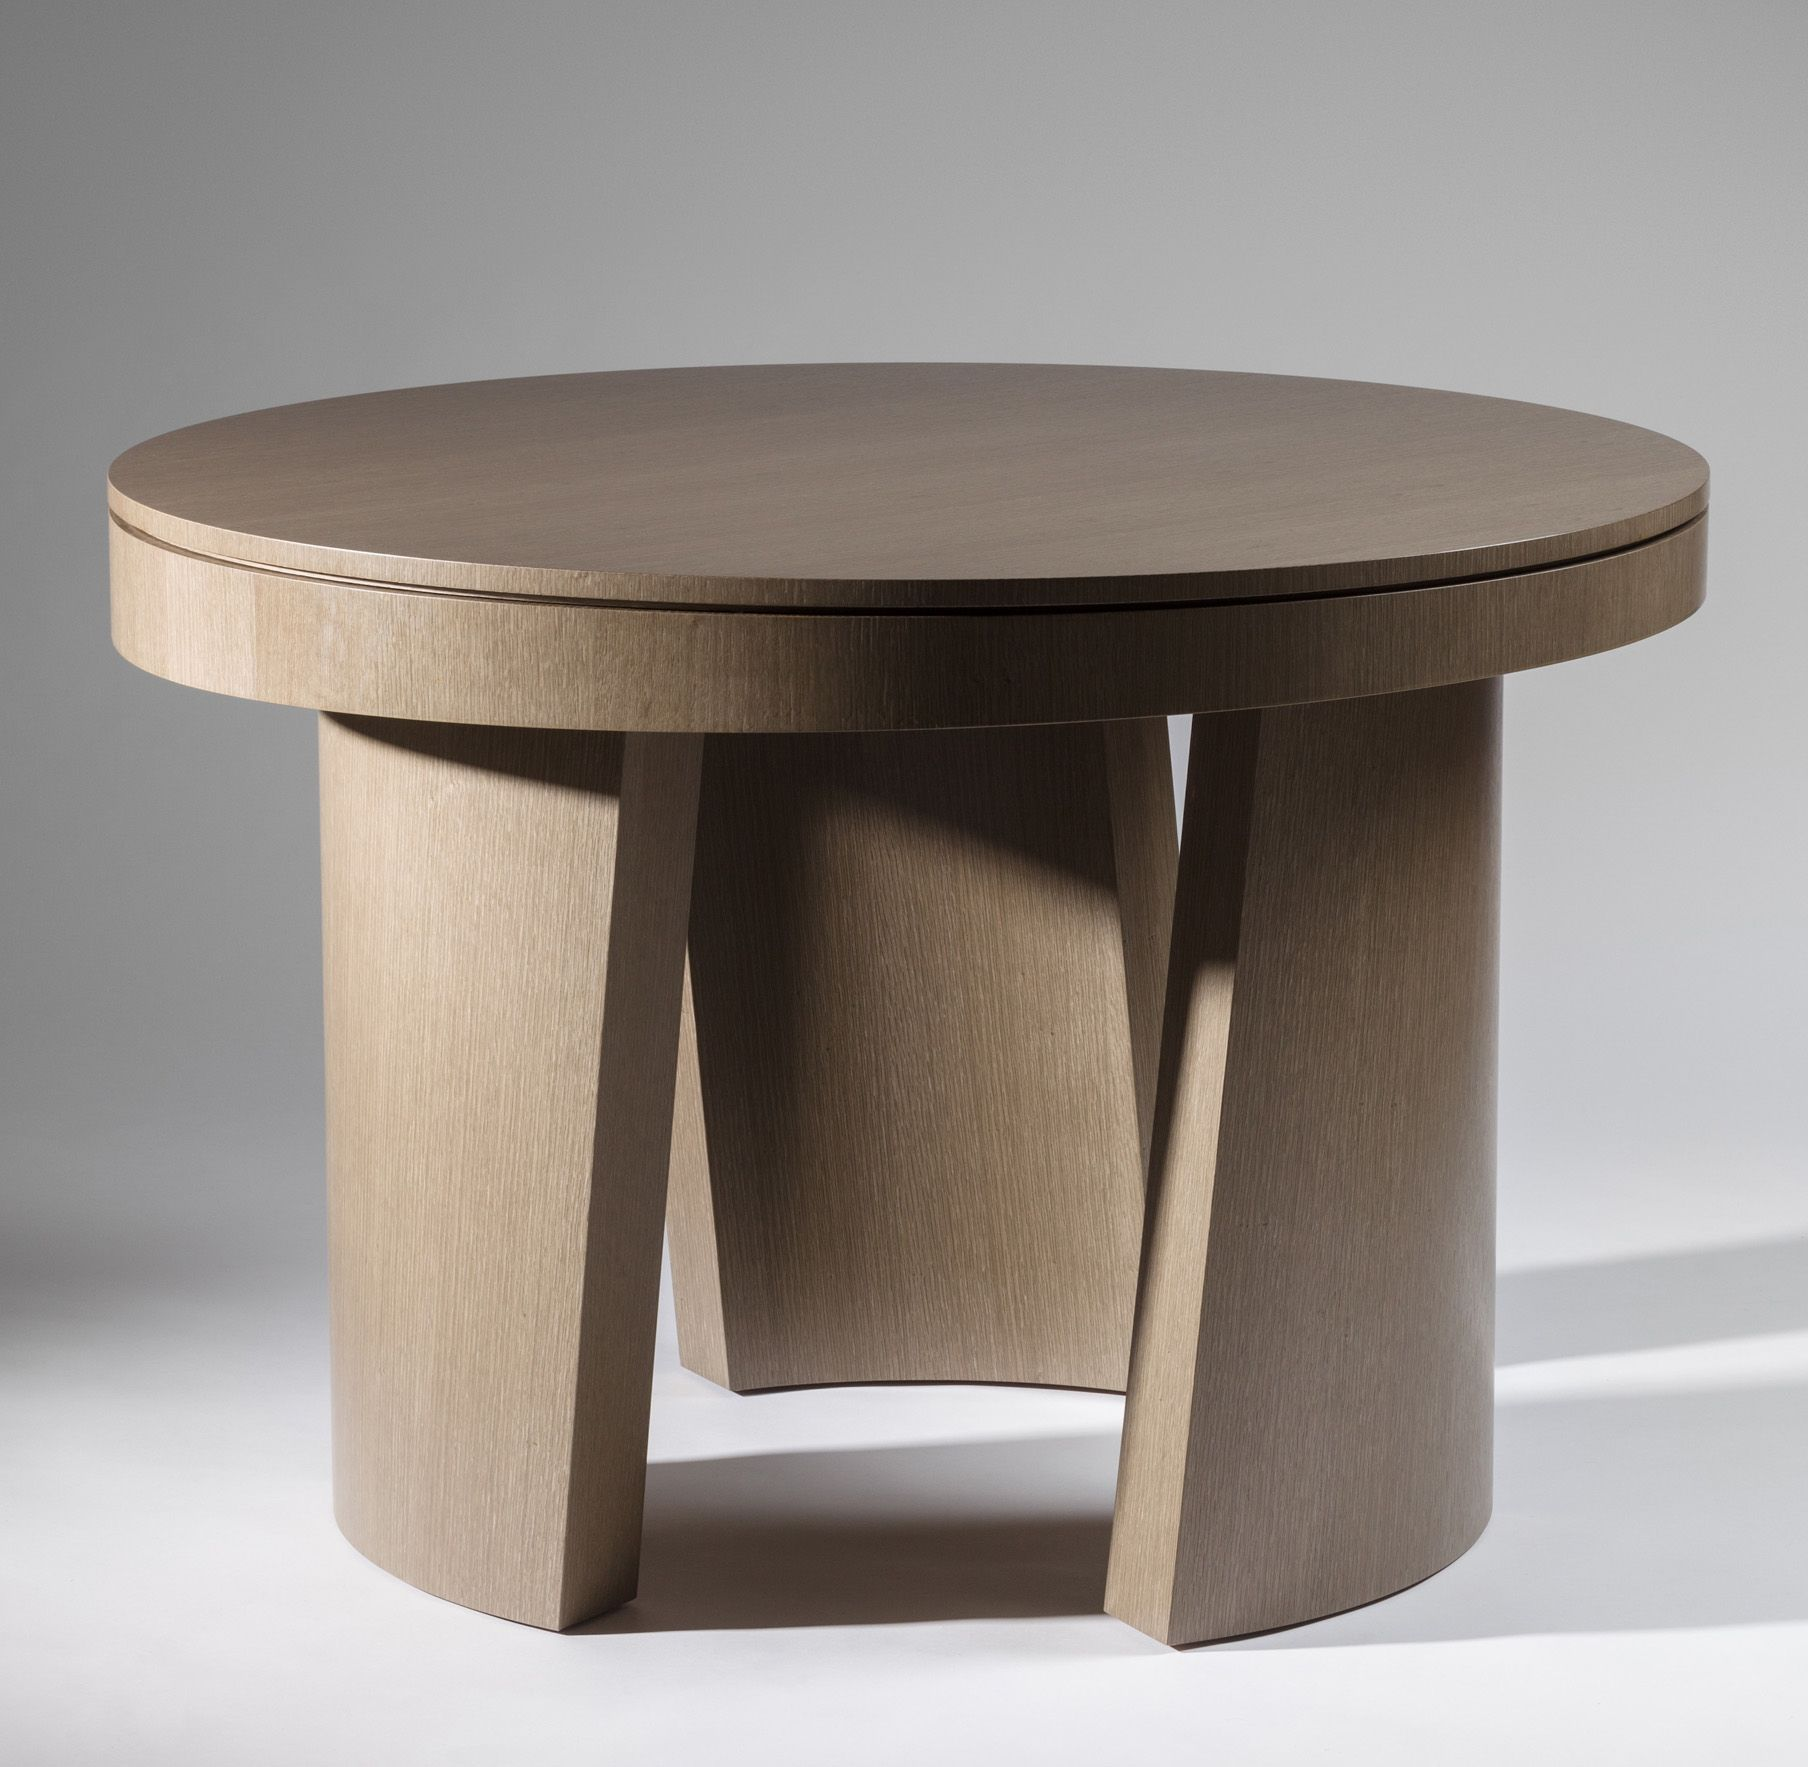 Dolmen Table Gray By Zelouf And Bell At Bespoke Global Furniture Dining Table Table Furniture Furniture Side Tables [ 1767 x 1808 Pixel ]